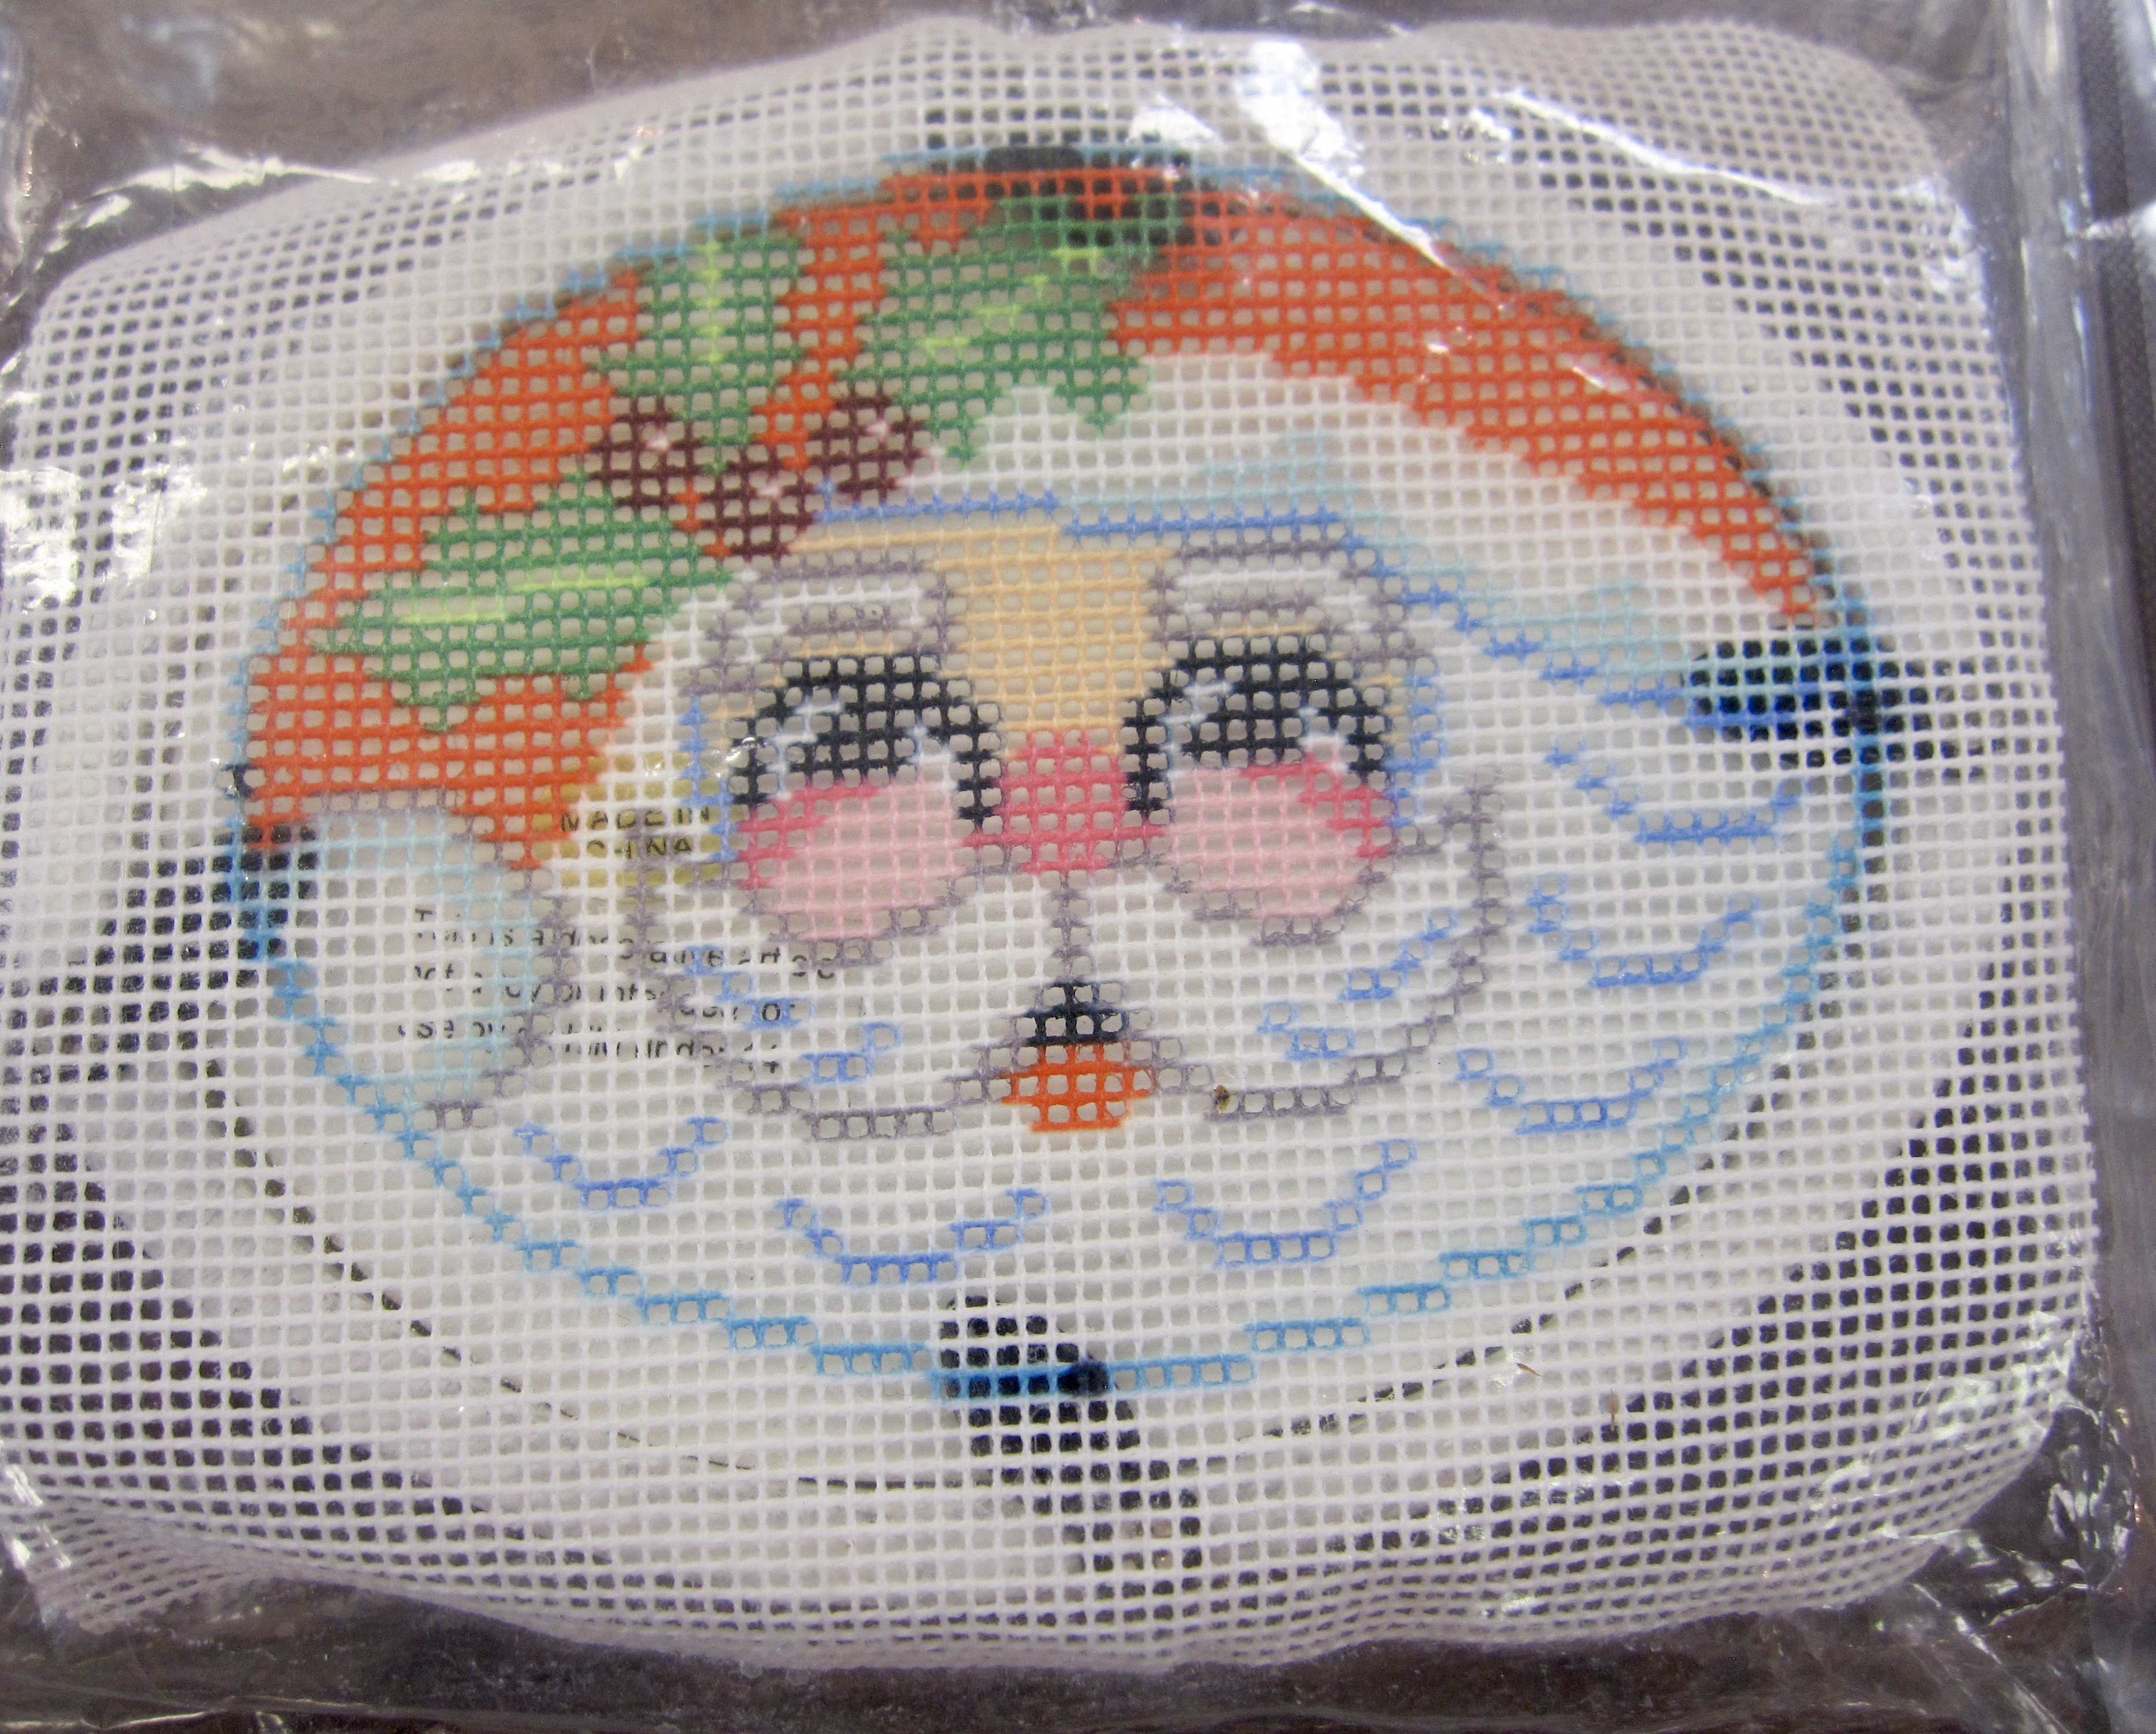 Santa Claus face and frame kit ornament